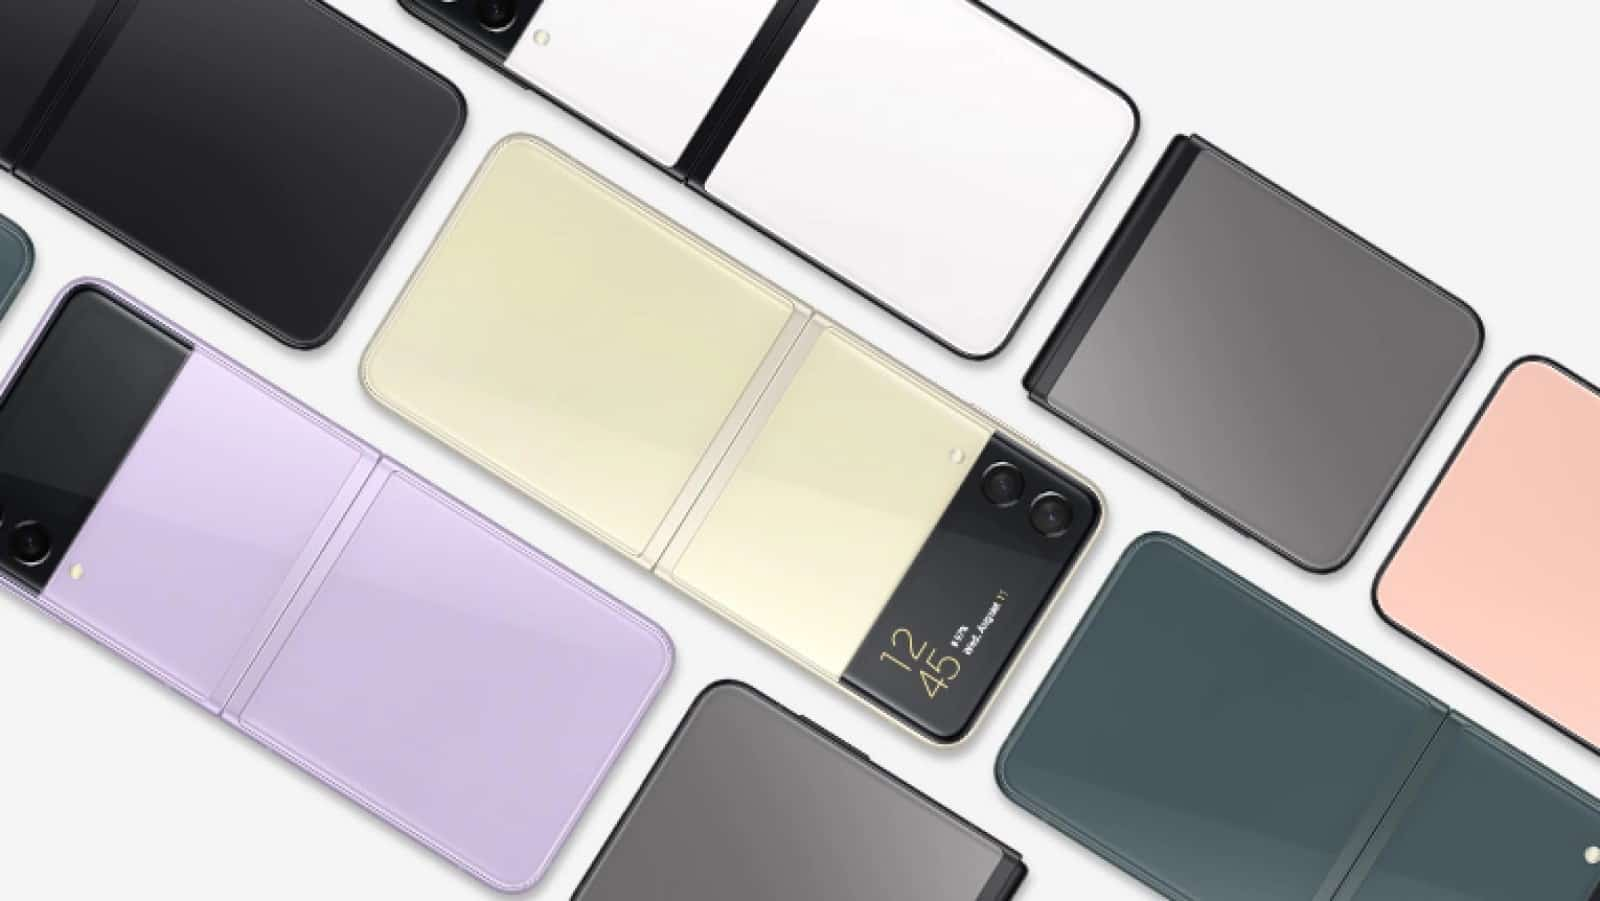 samsung galaxy z flip 3 handsets arranged to show white, black, gray, pearl, purple, pink and green color options